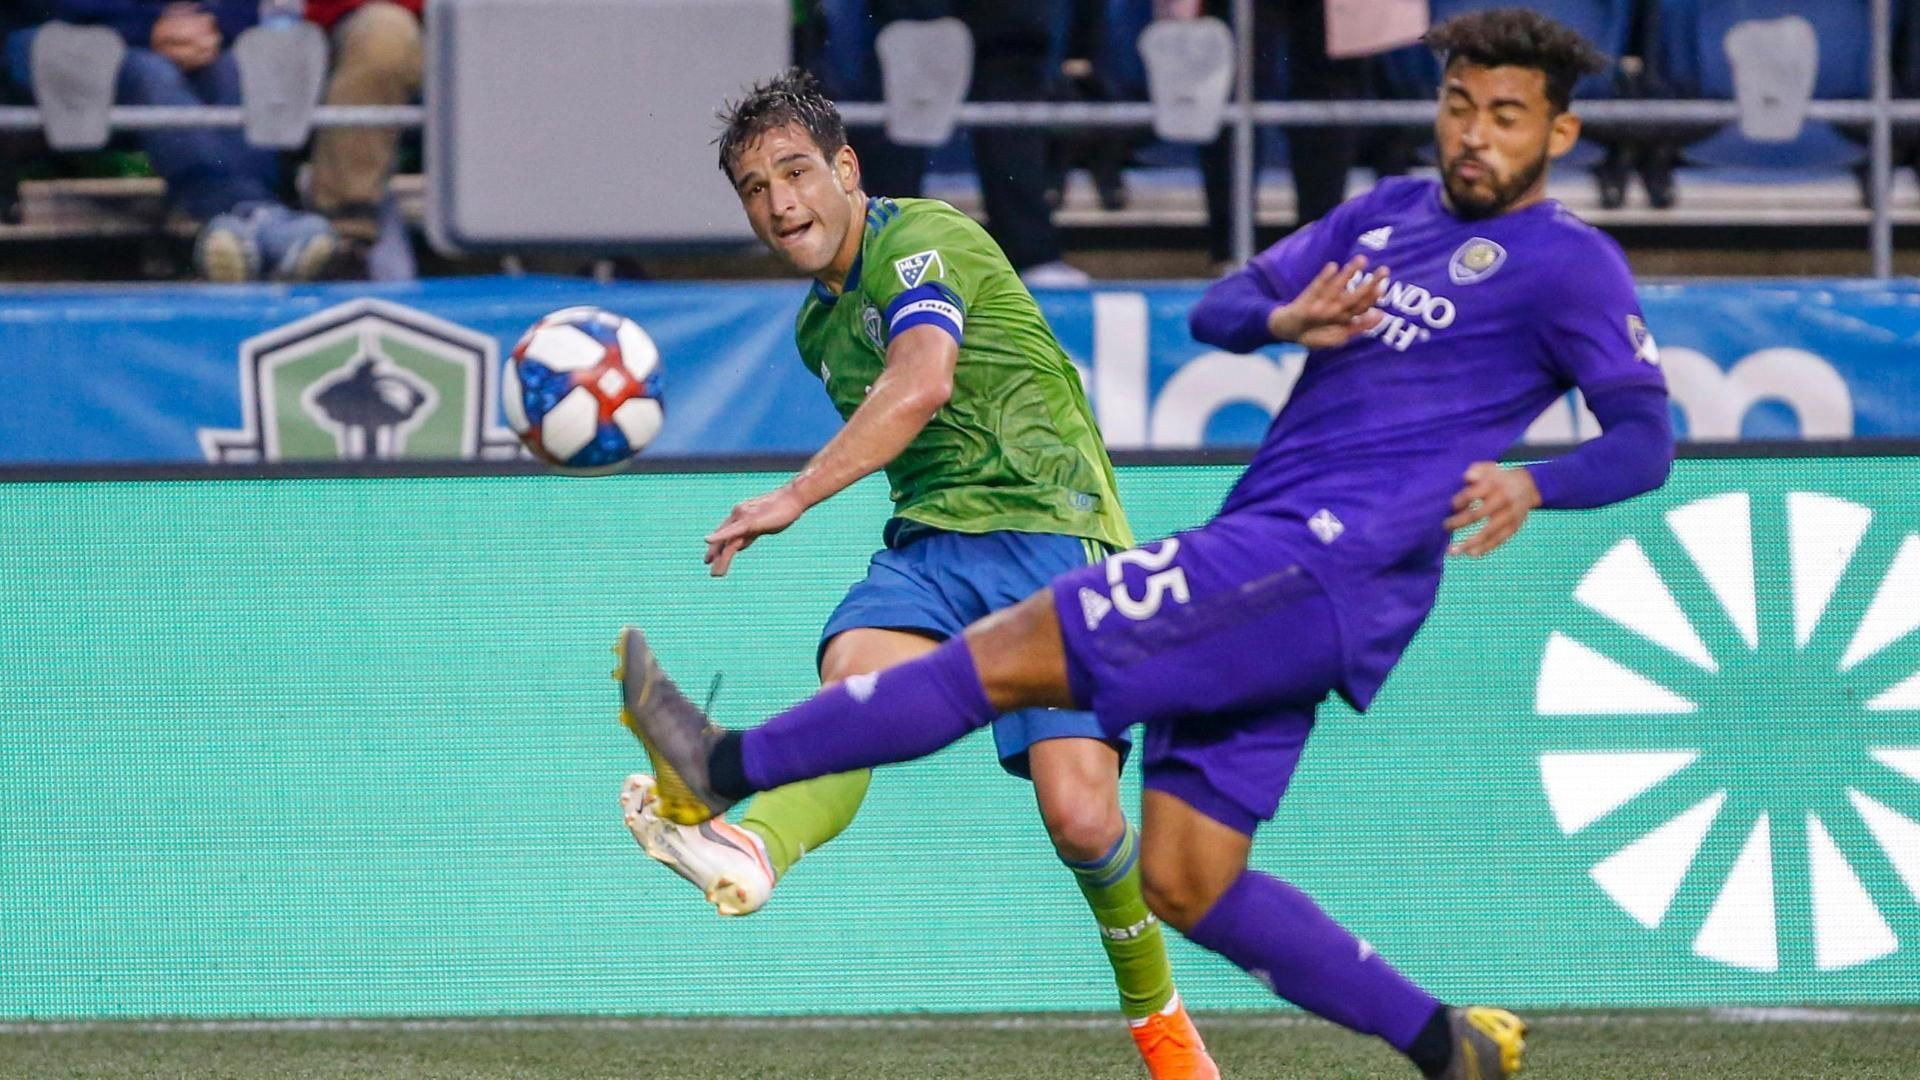 Sounders extend Orlando's losing streak to 3